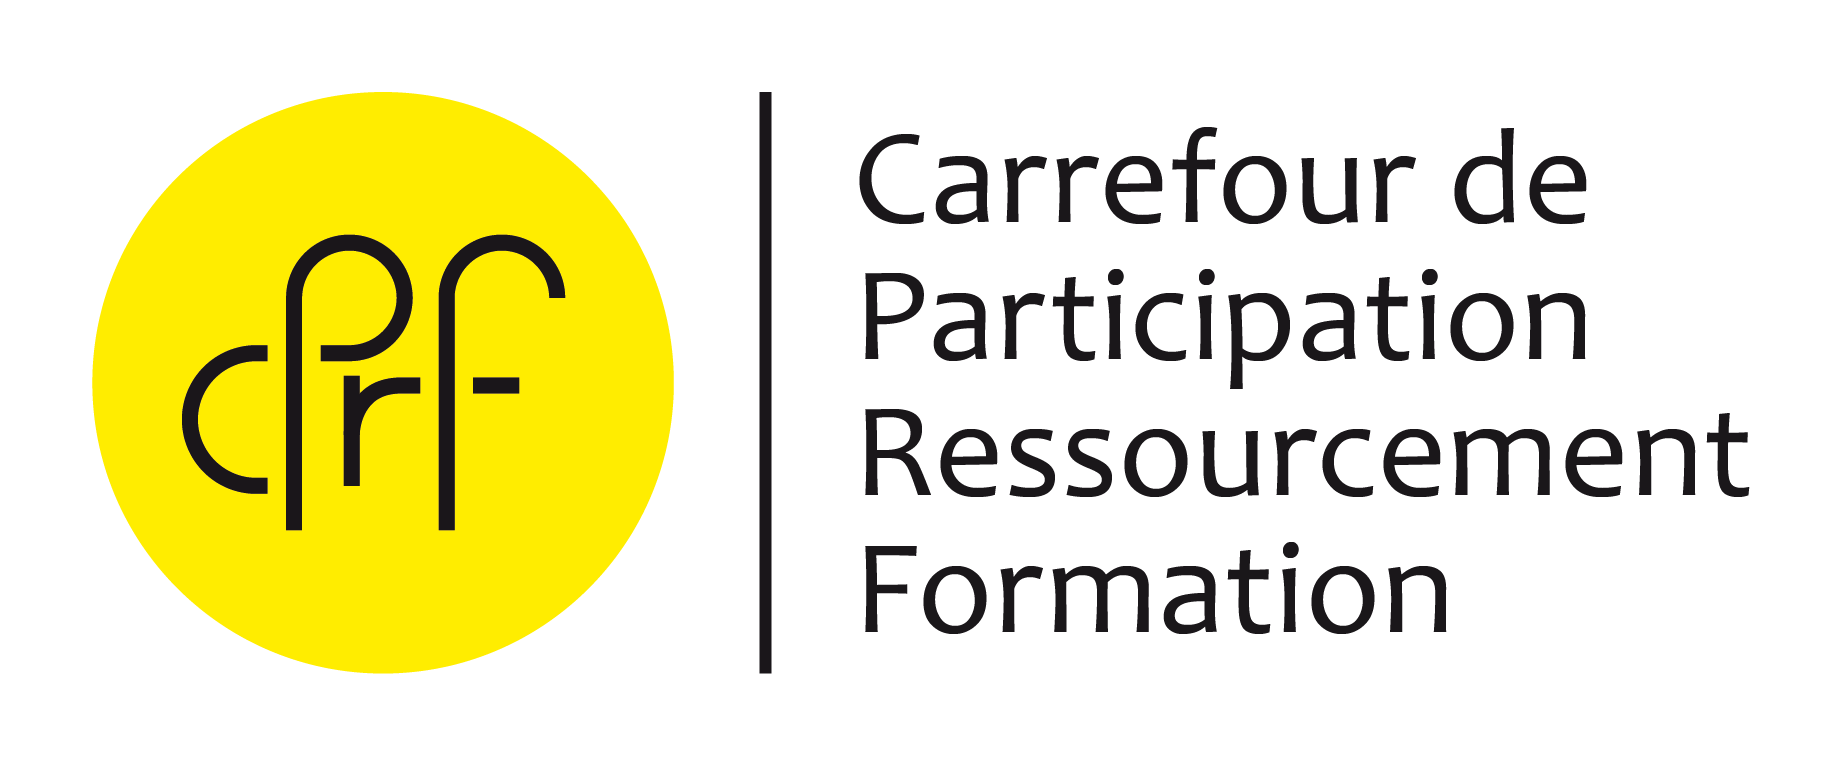 Carrefour de participation, ressourcement et formation